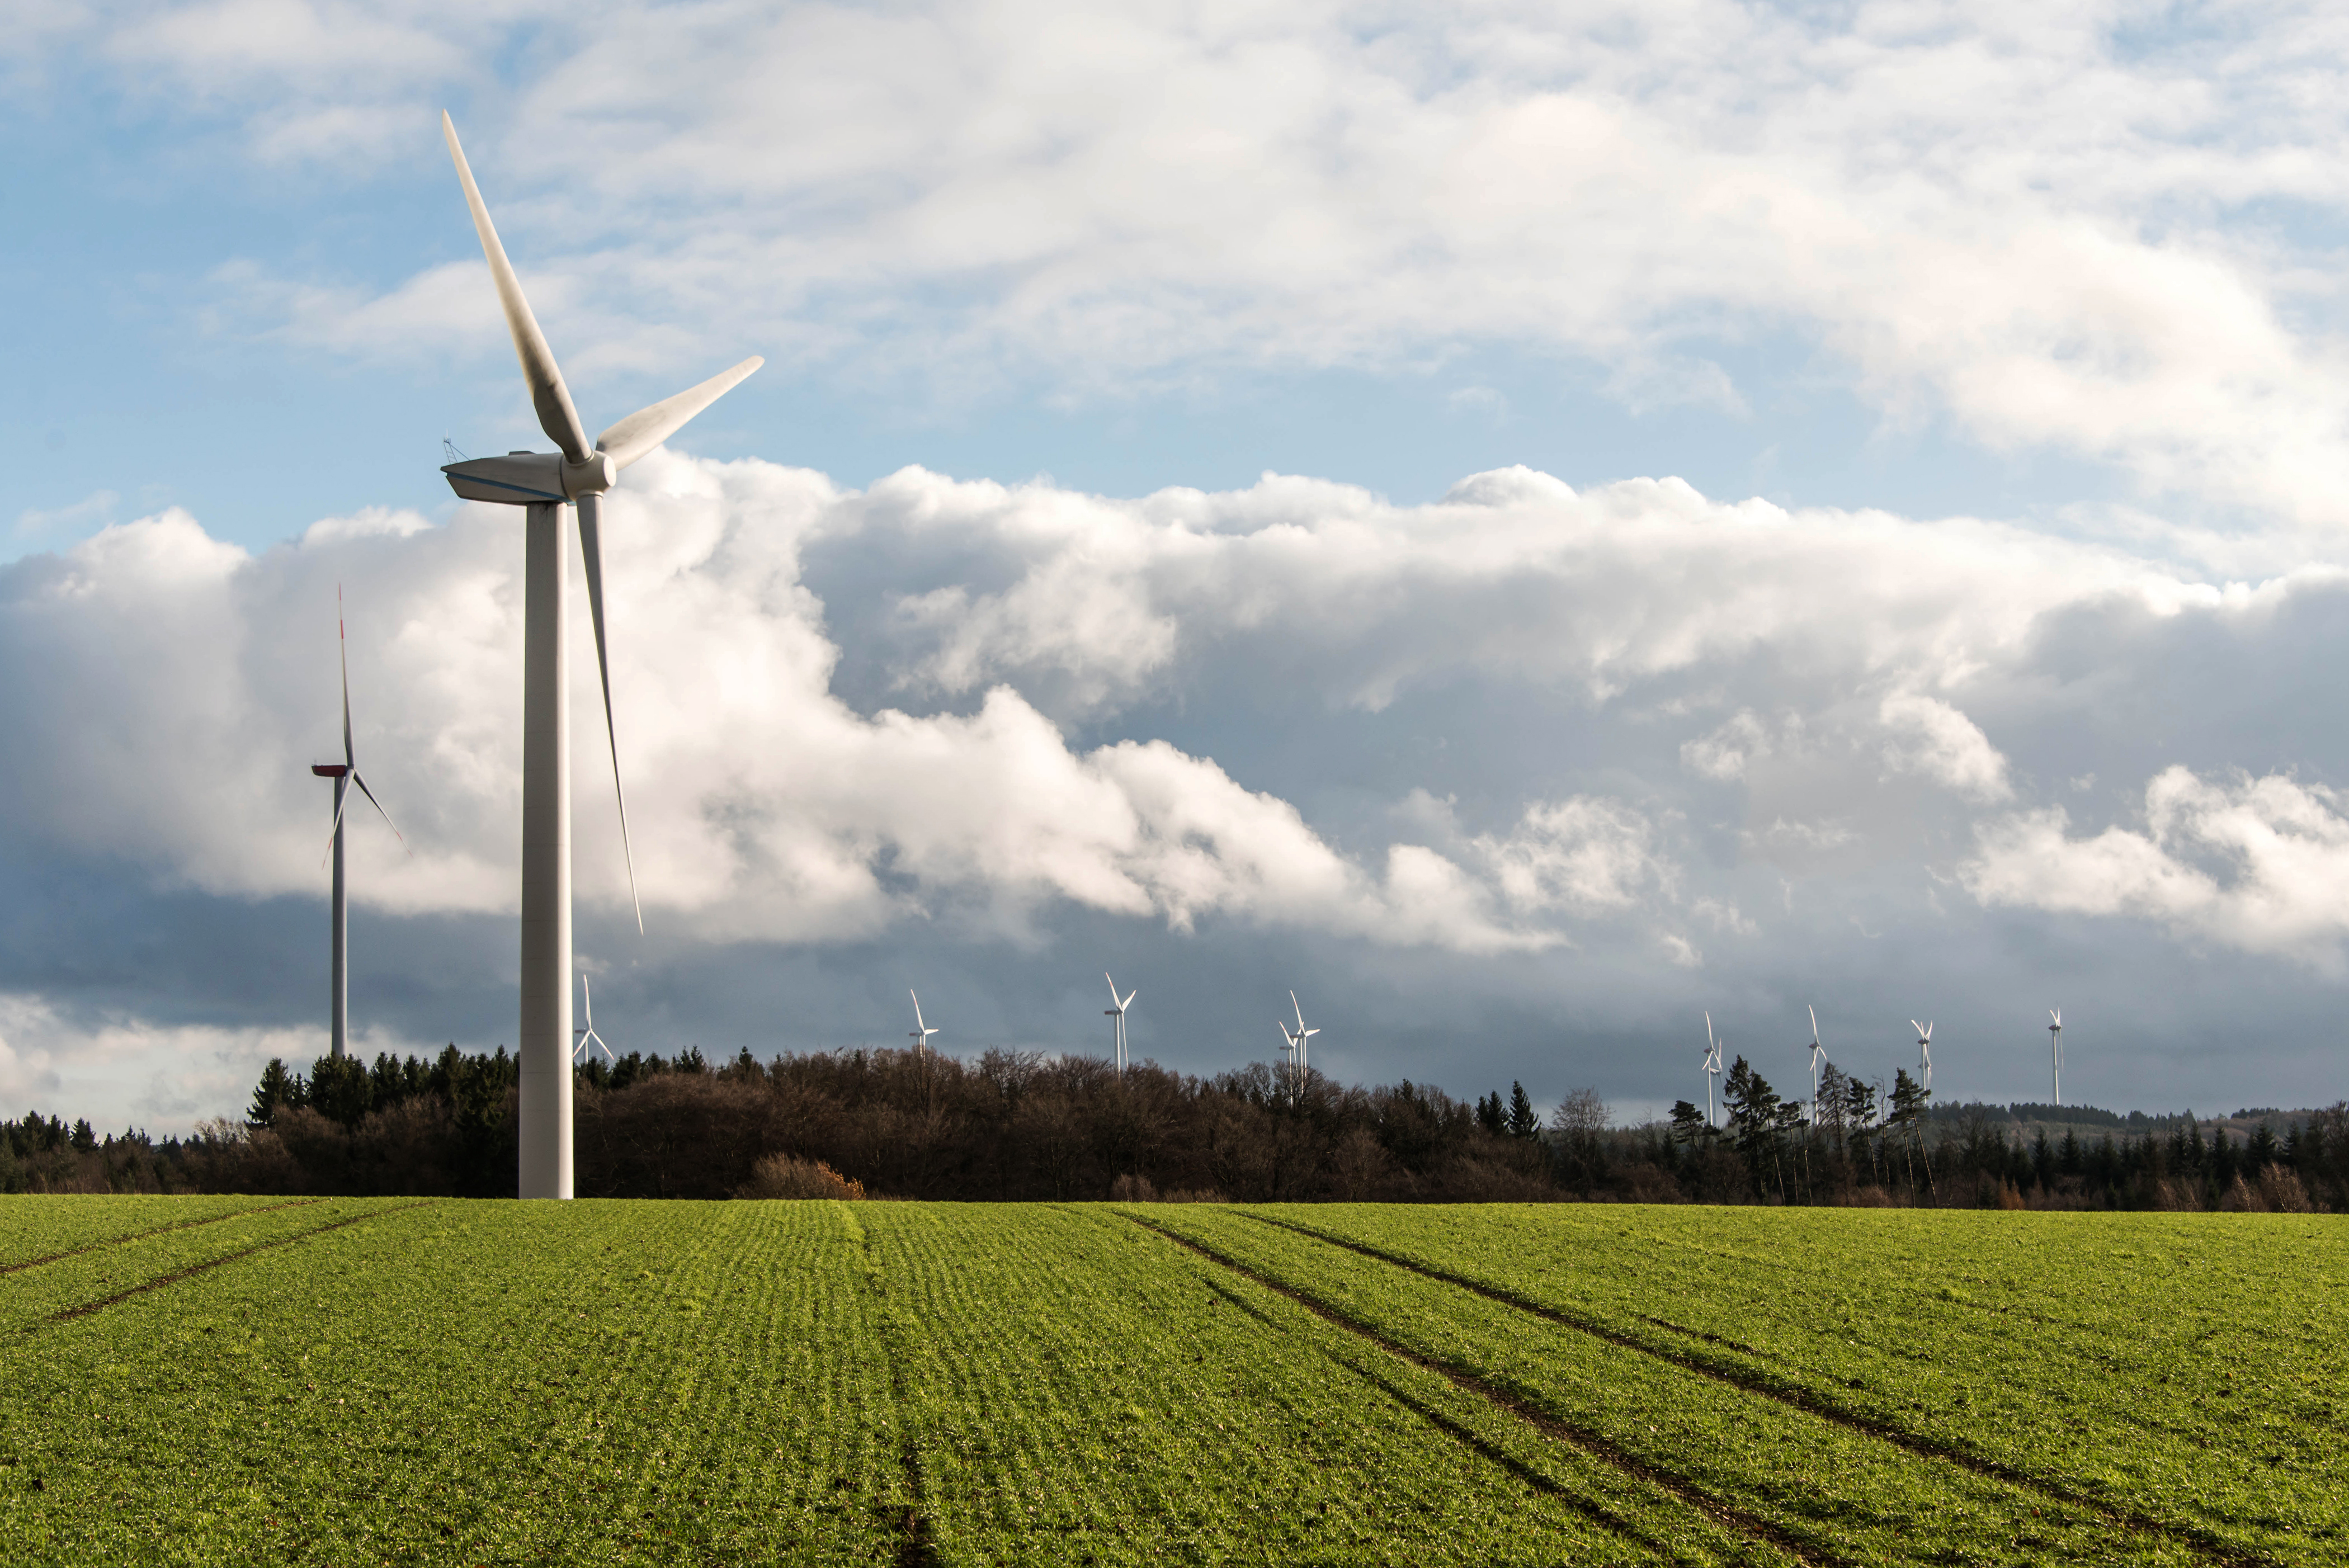 A panorama view over a wind farm landscape in Germany with white generator turbines